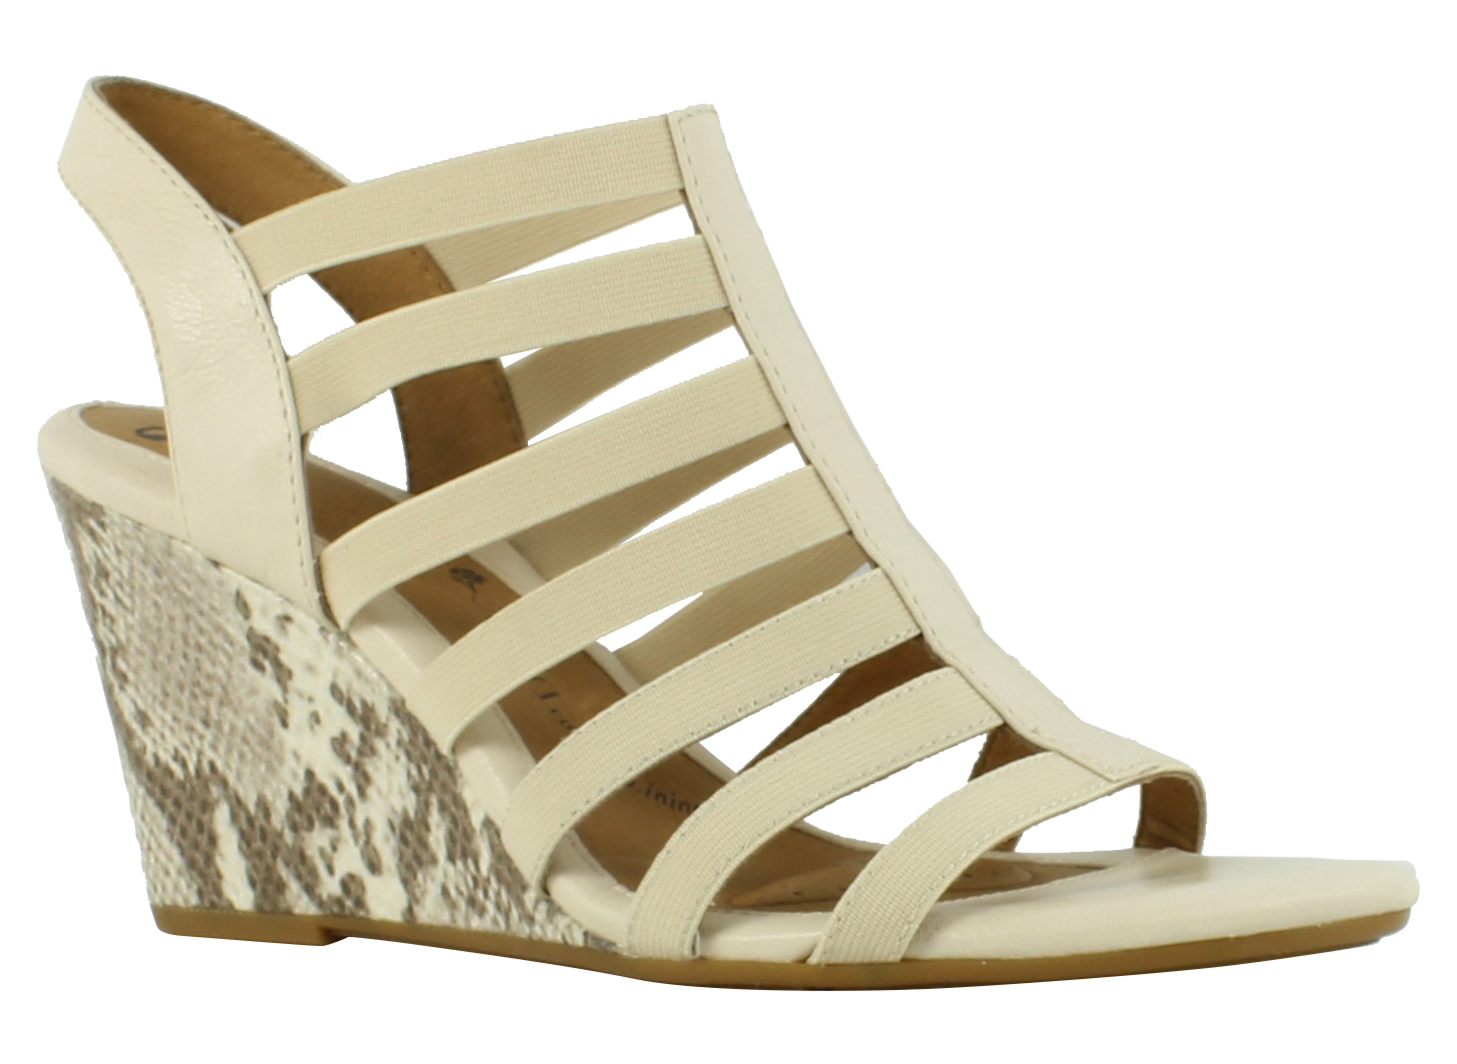 New Sofft Womens Beige Sandals Size 8.5 by Sofft